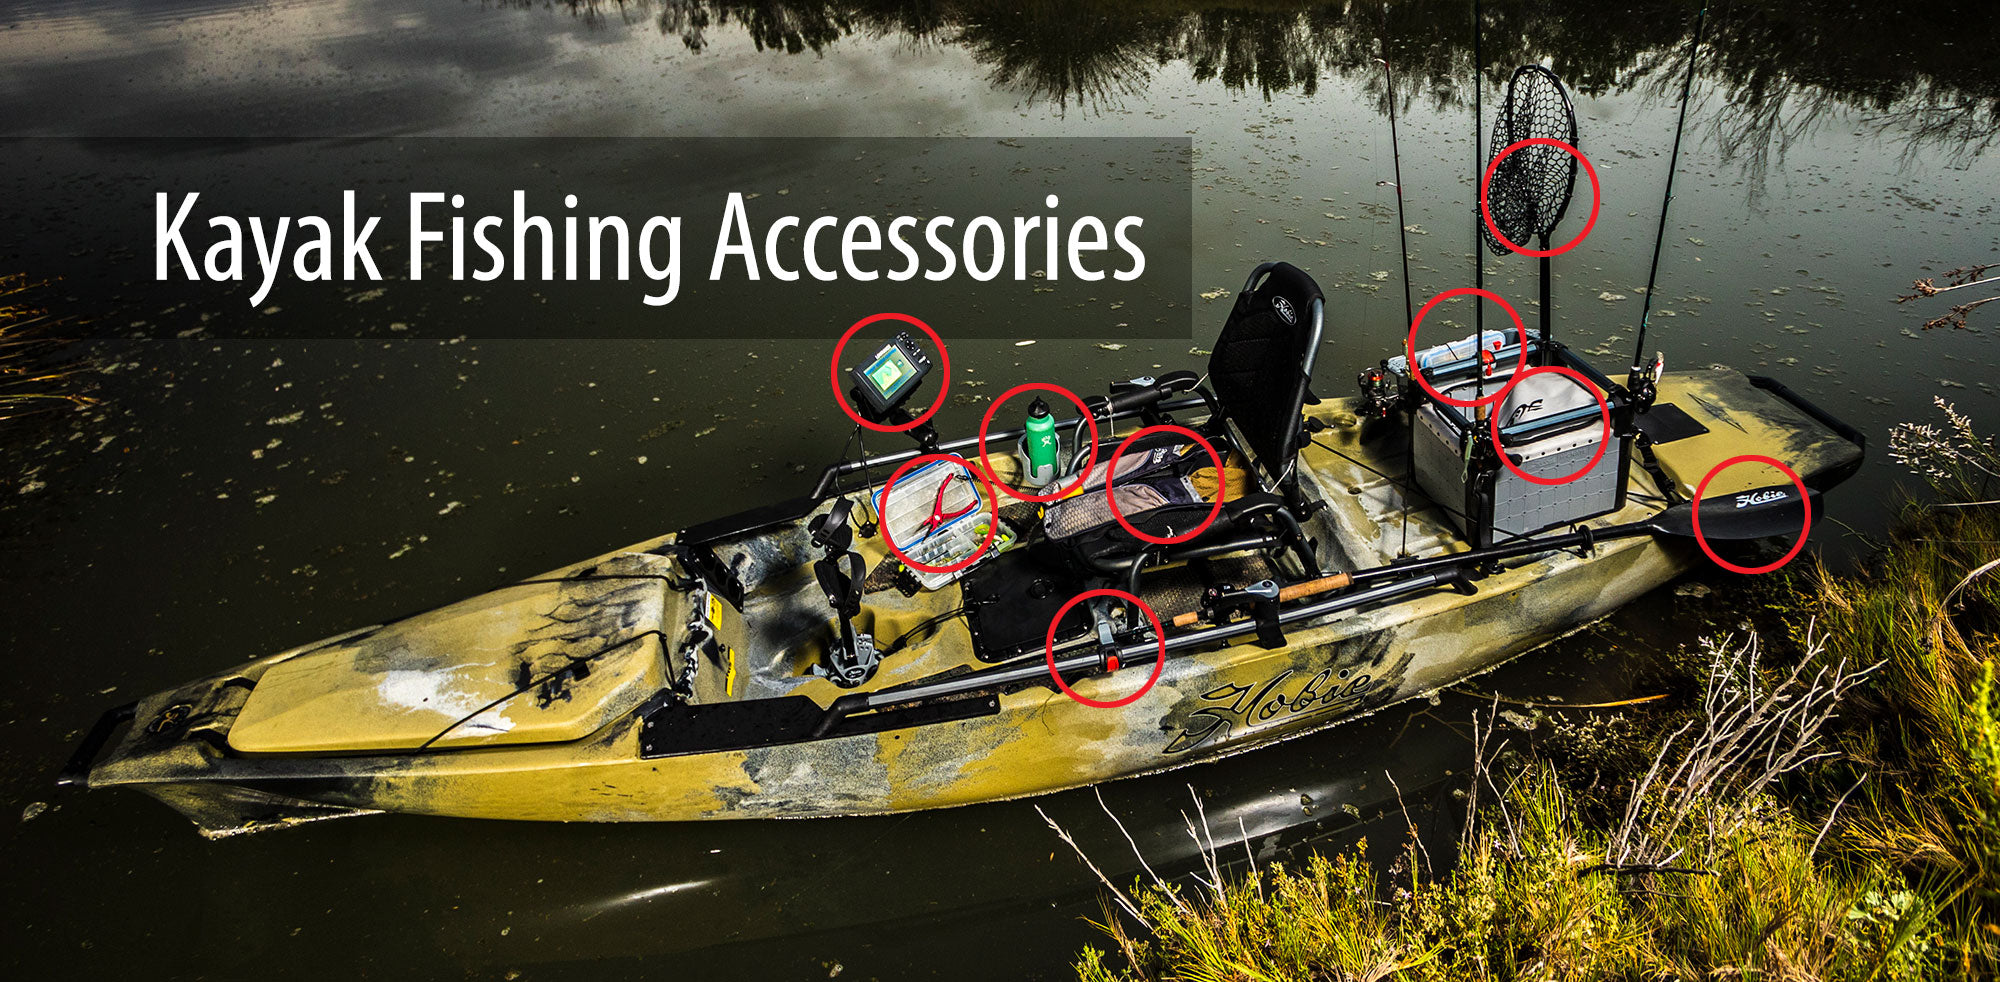 Kayak Fishing Accessories